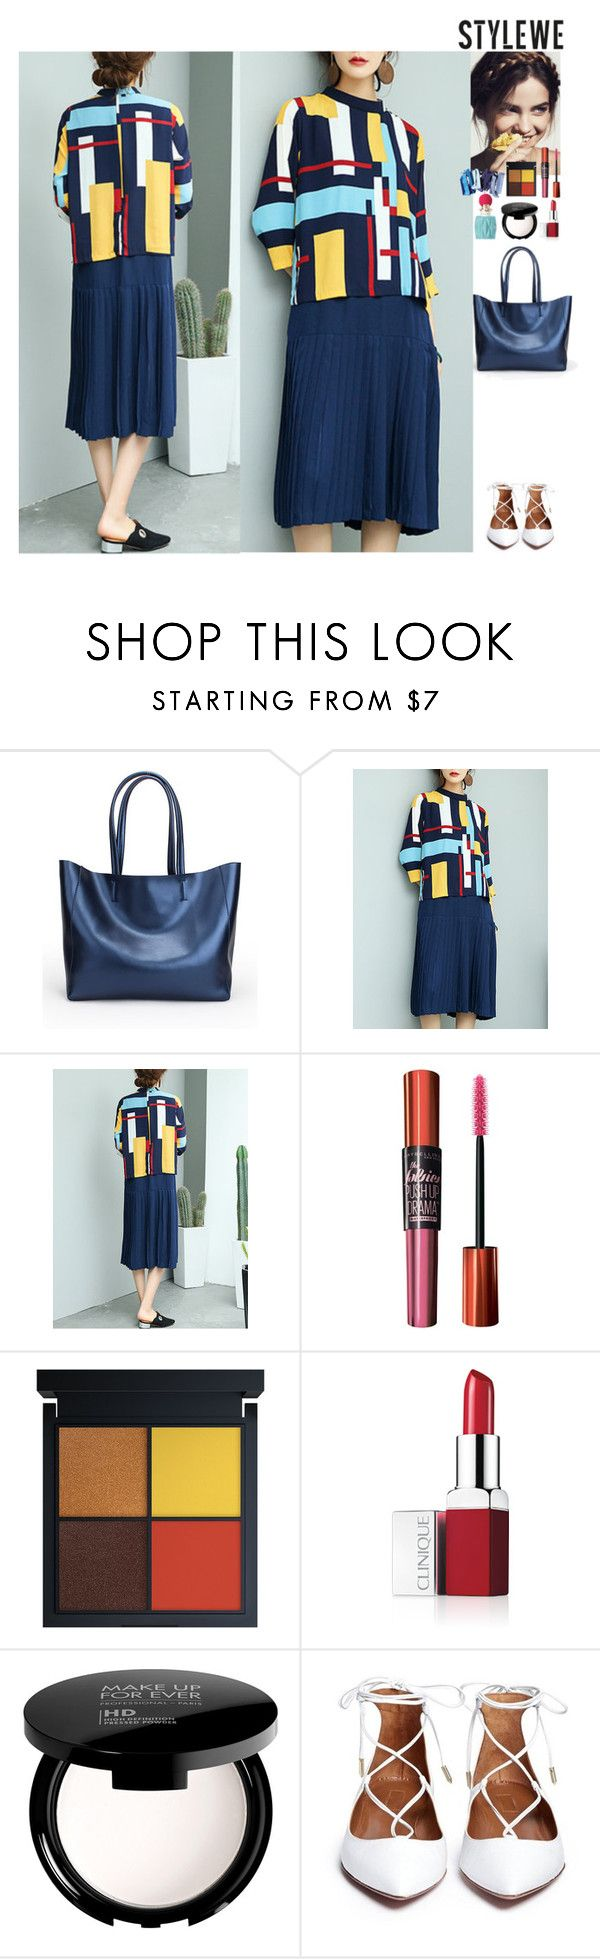 Outfit StyleWe by eliza-redkina on Polyvore featuring мода, MAKE UP FOR EVER, Clinique and Maybelline